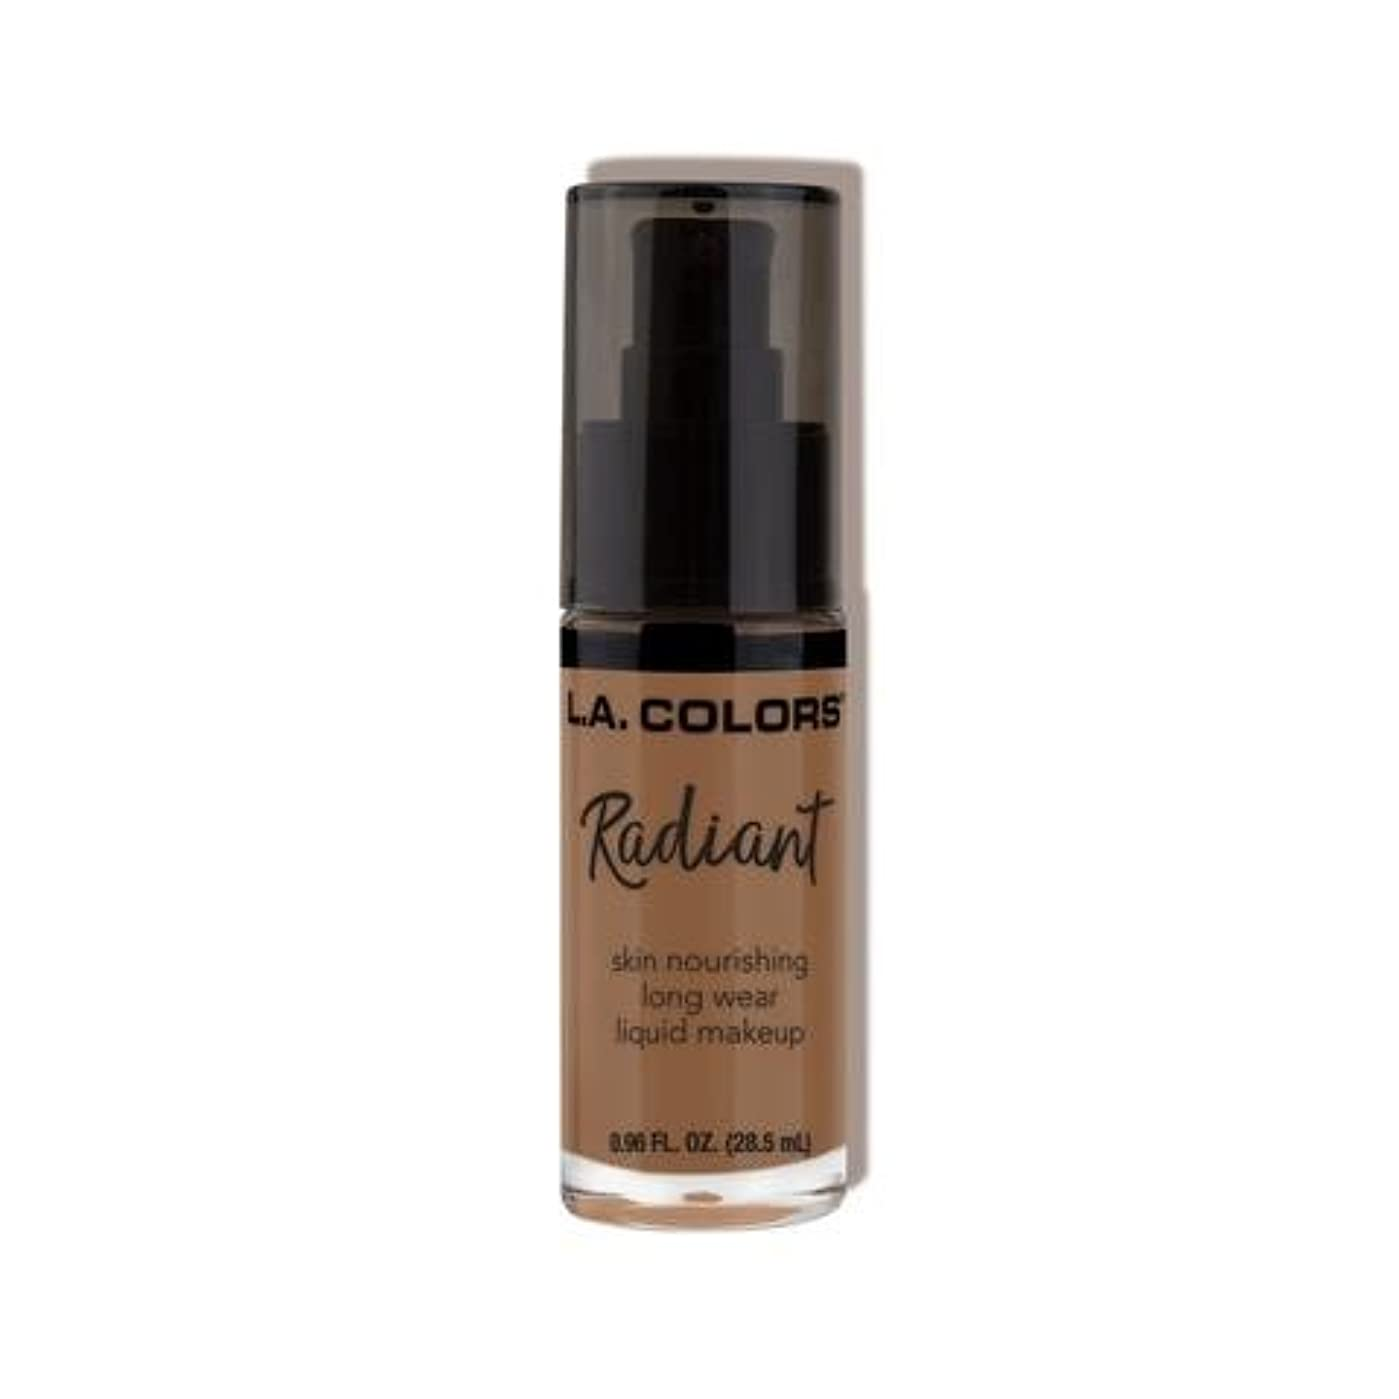 陽気な欠陥傾いた(6 Pack) L.A. COLORS Radiant Liquid Makeup - Mocha (並行輸入品)